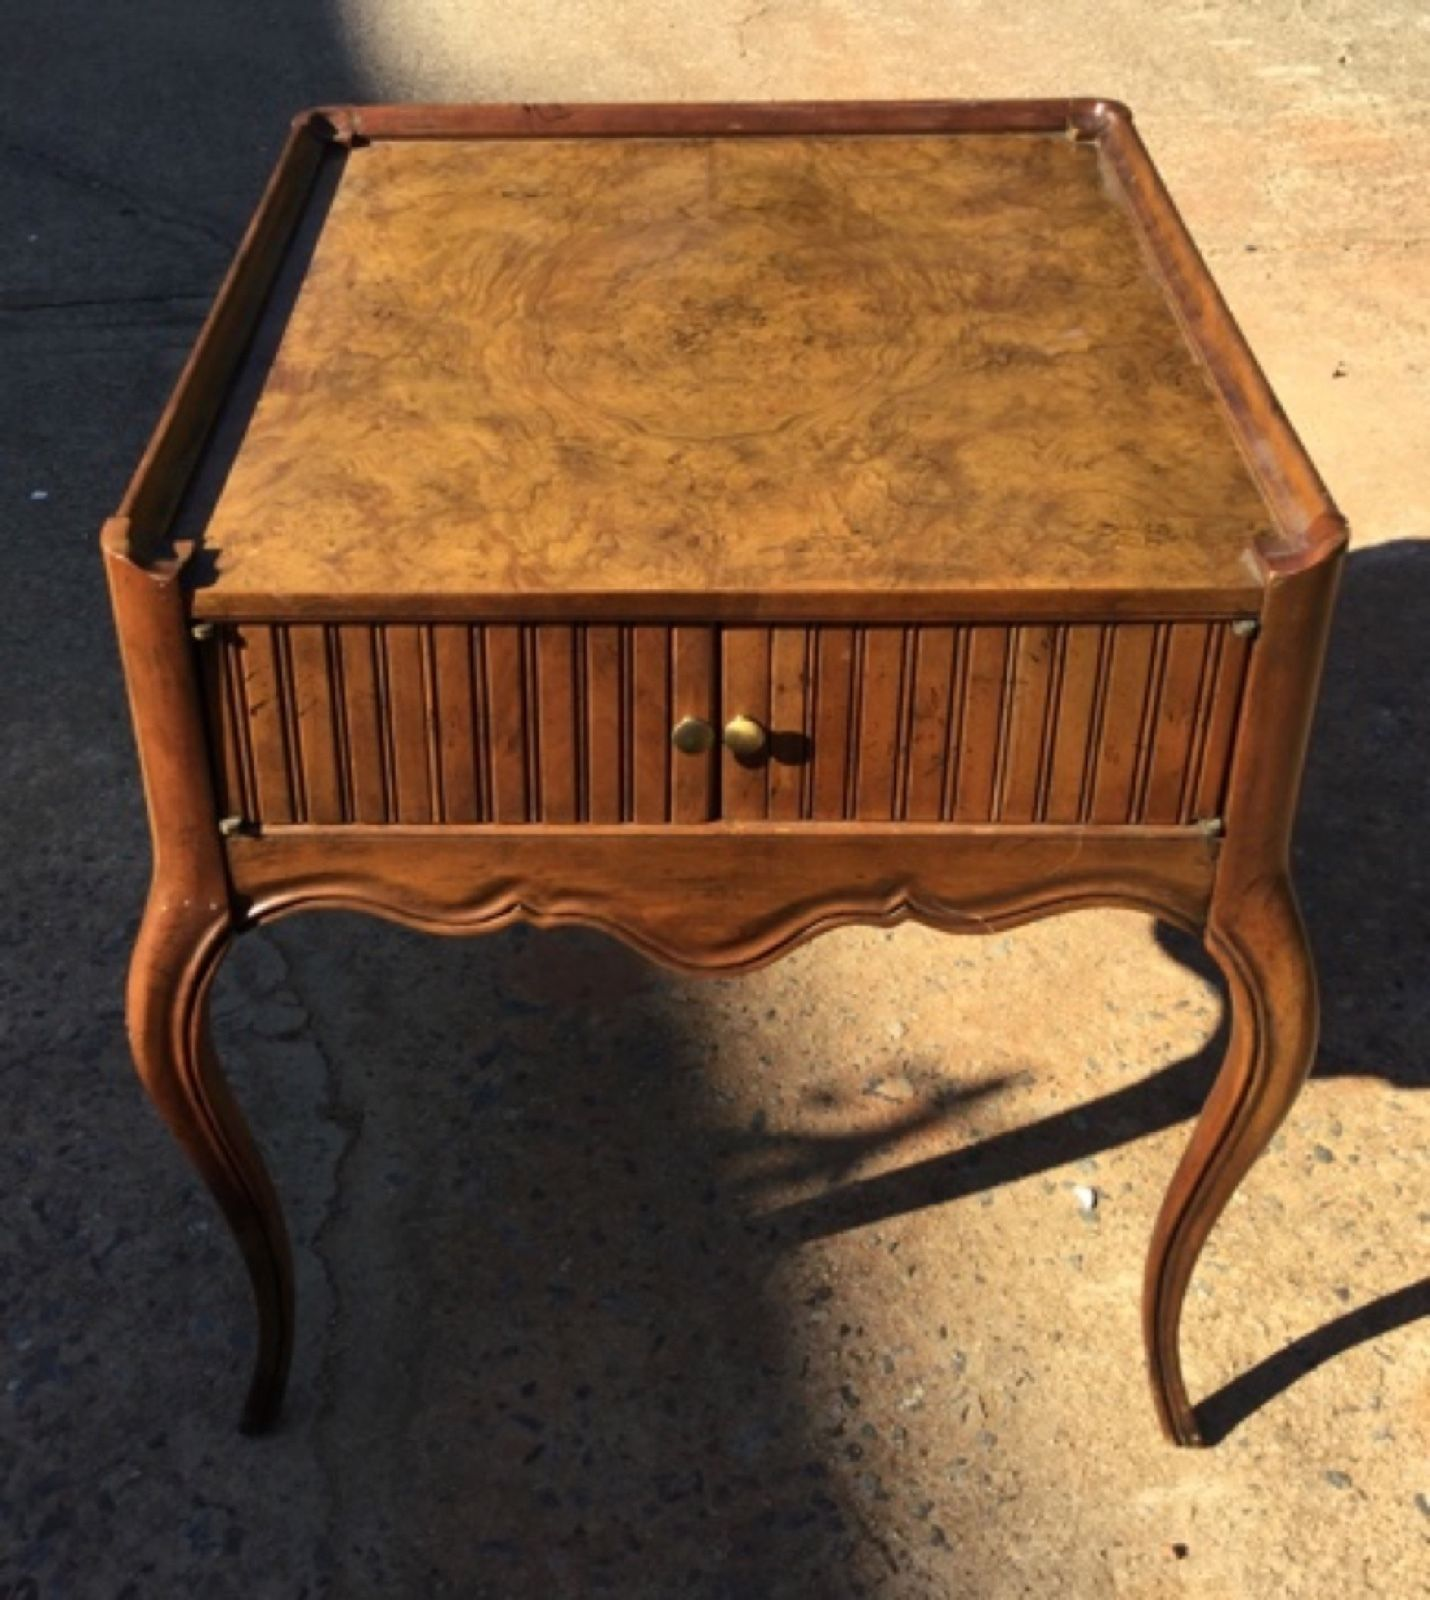 Details about Quality Vintage Baker Furniture Small End Table with